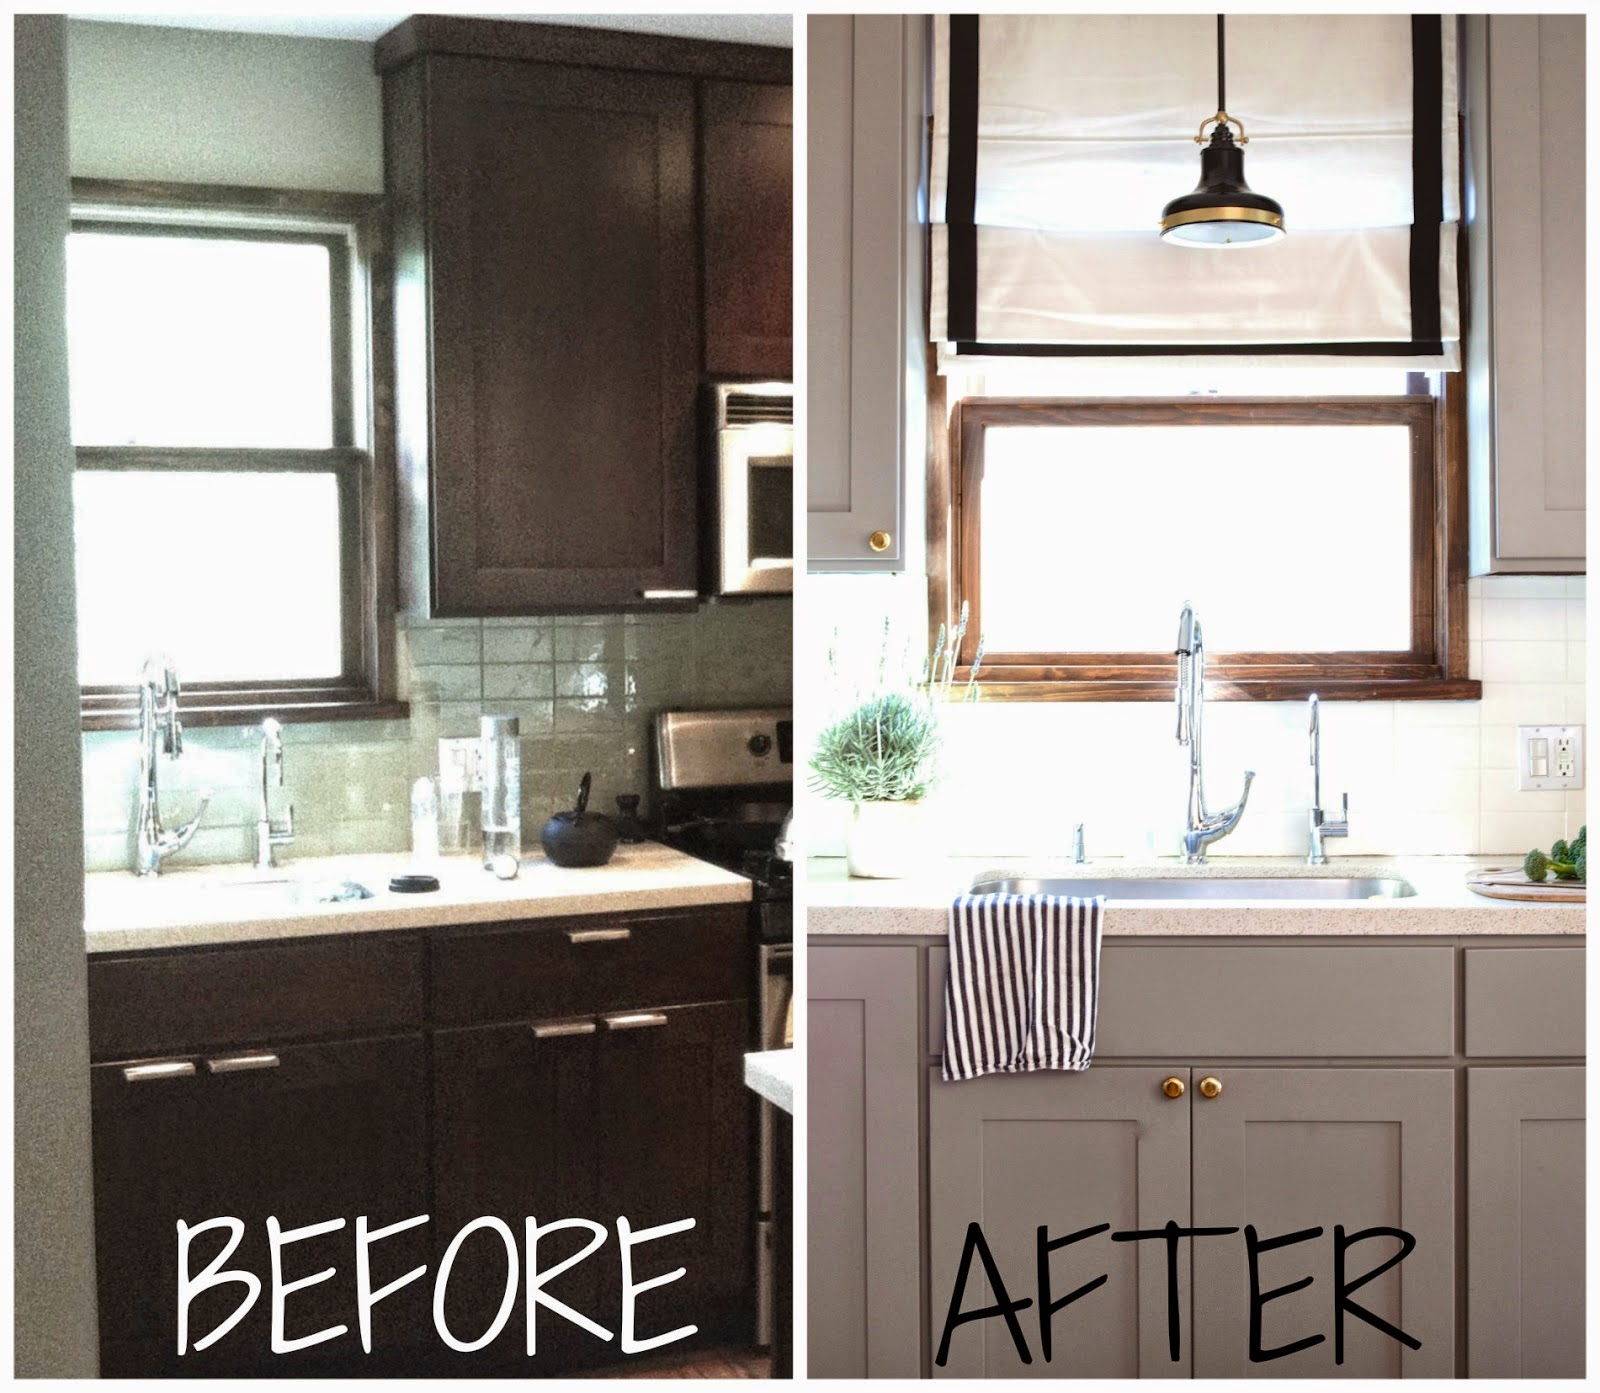 Kitchen Tiles Painted Over rosa beltran design: diy painted tile backsplash